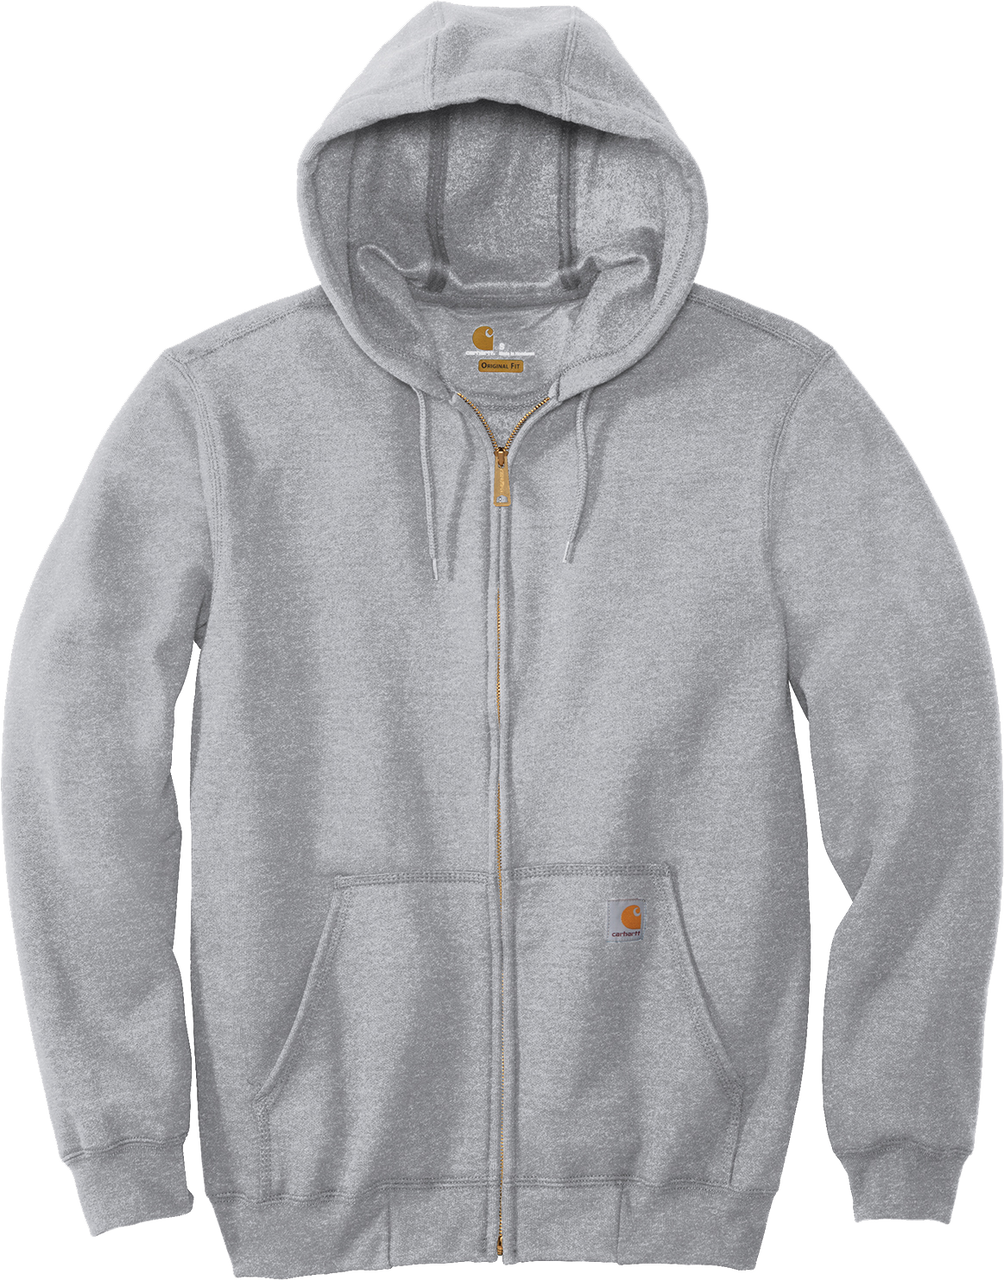 Heather Grey CTK122 Carhartt 10.5 oz Midweight Hooded Full Zip Sweatshirt